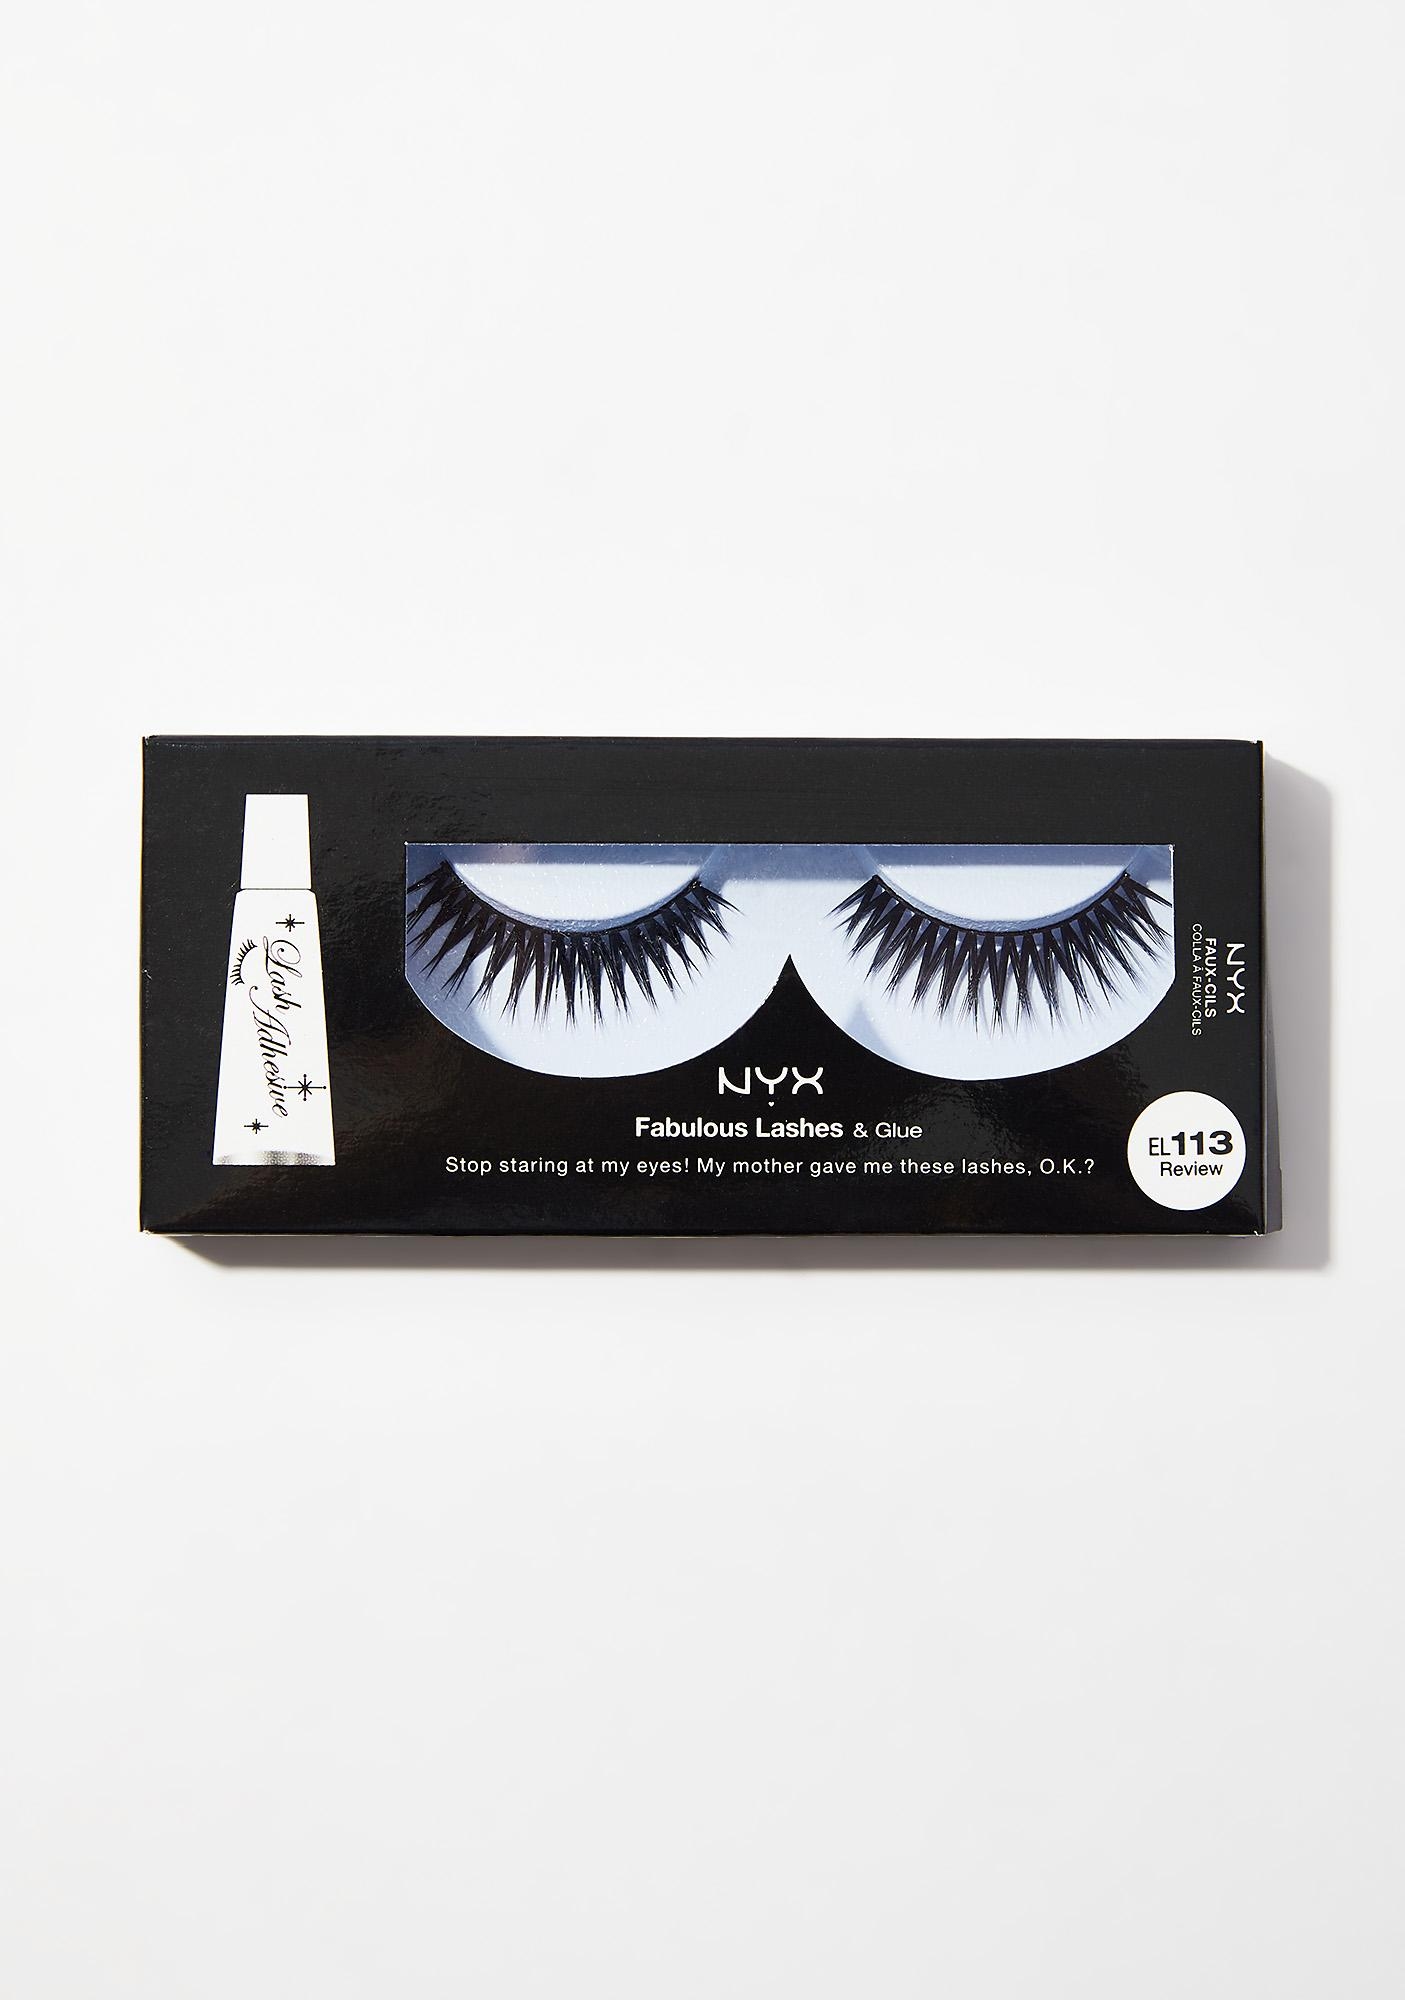 NYX Review Fabulous Lashes & Glue